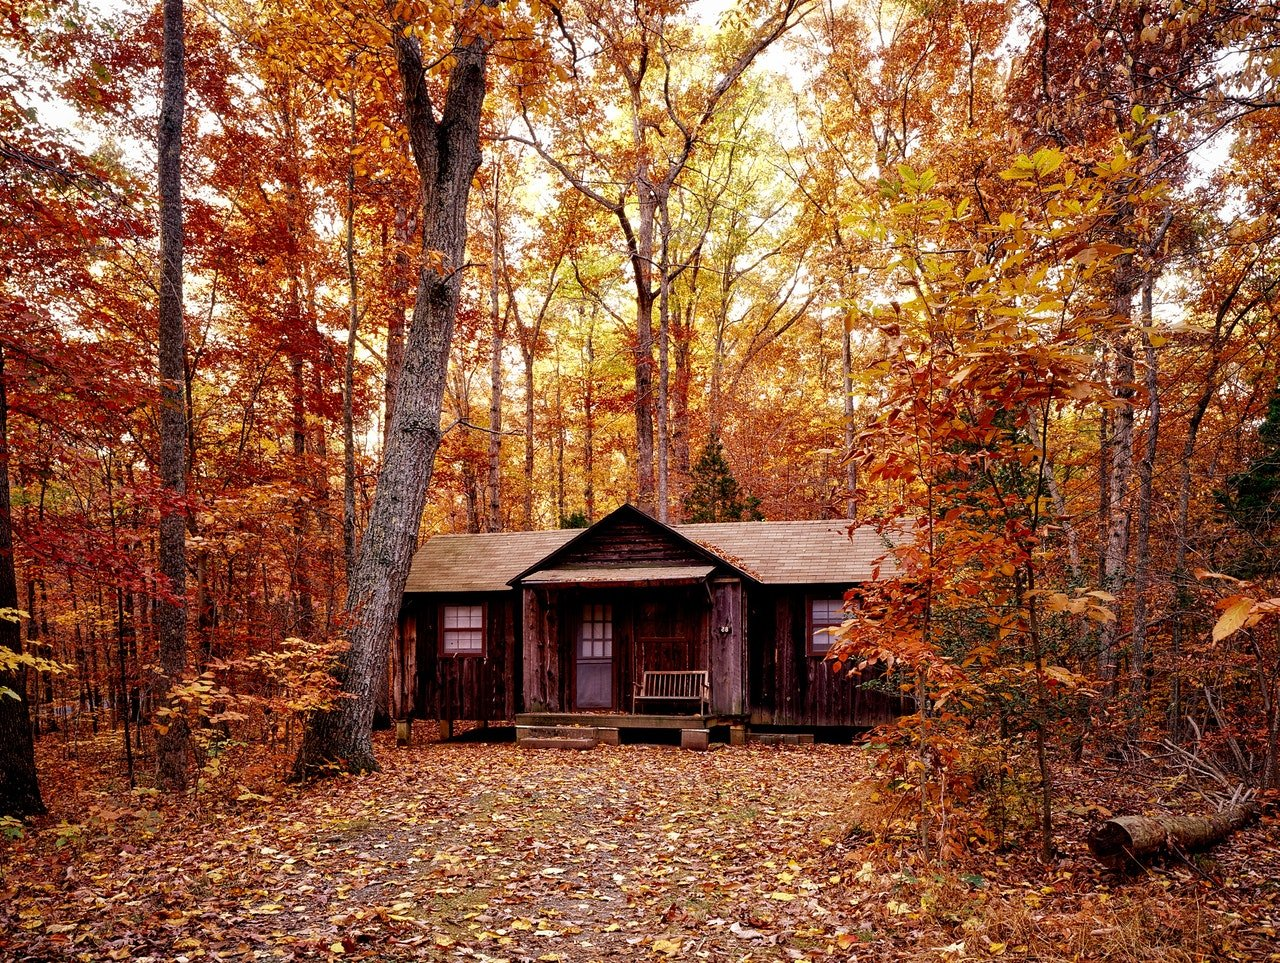 Photo of a wooden cabin located in the woods | Photo: Pexels